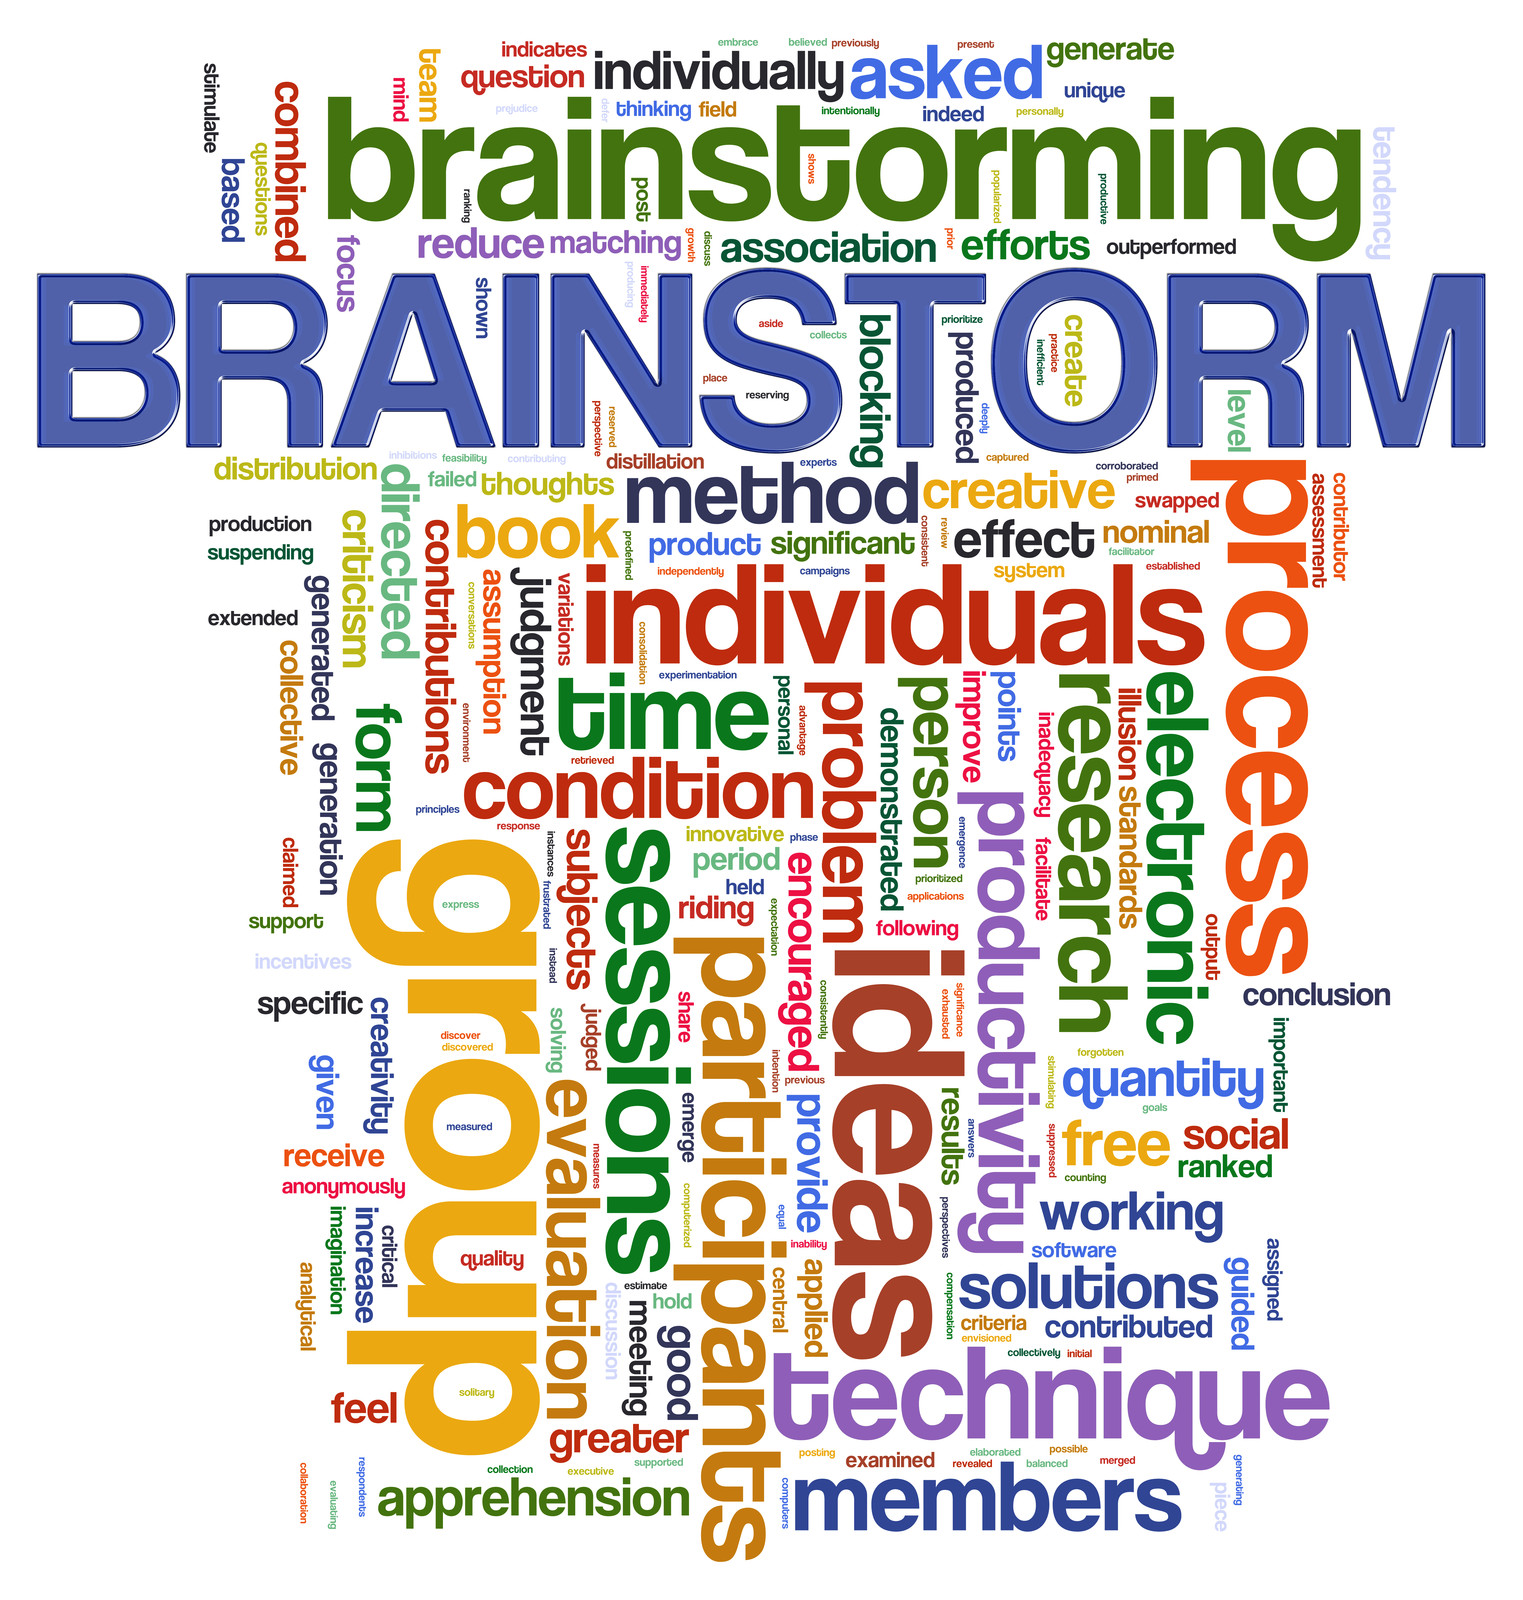 How to Brainstorm: Give Your Brain Free Rein